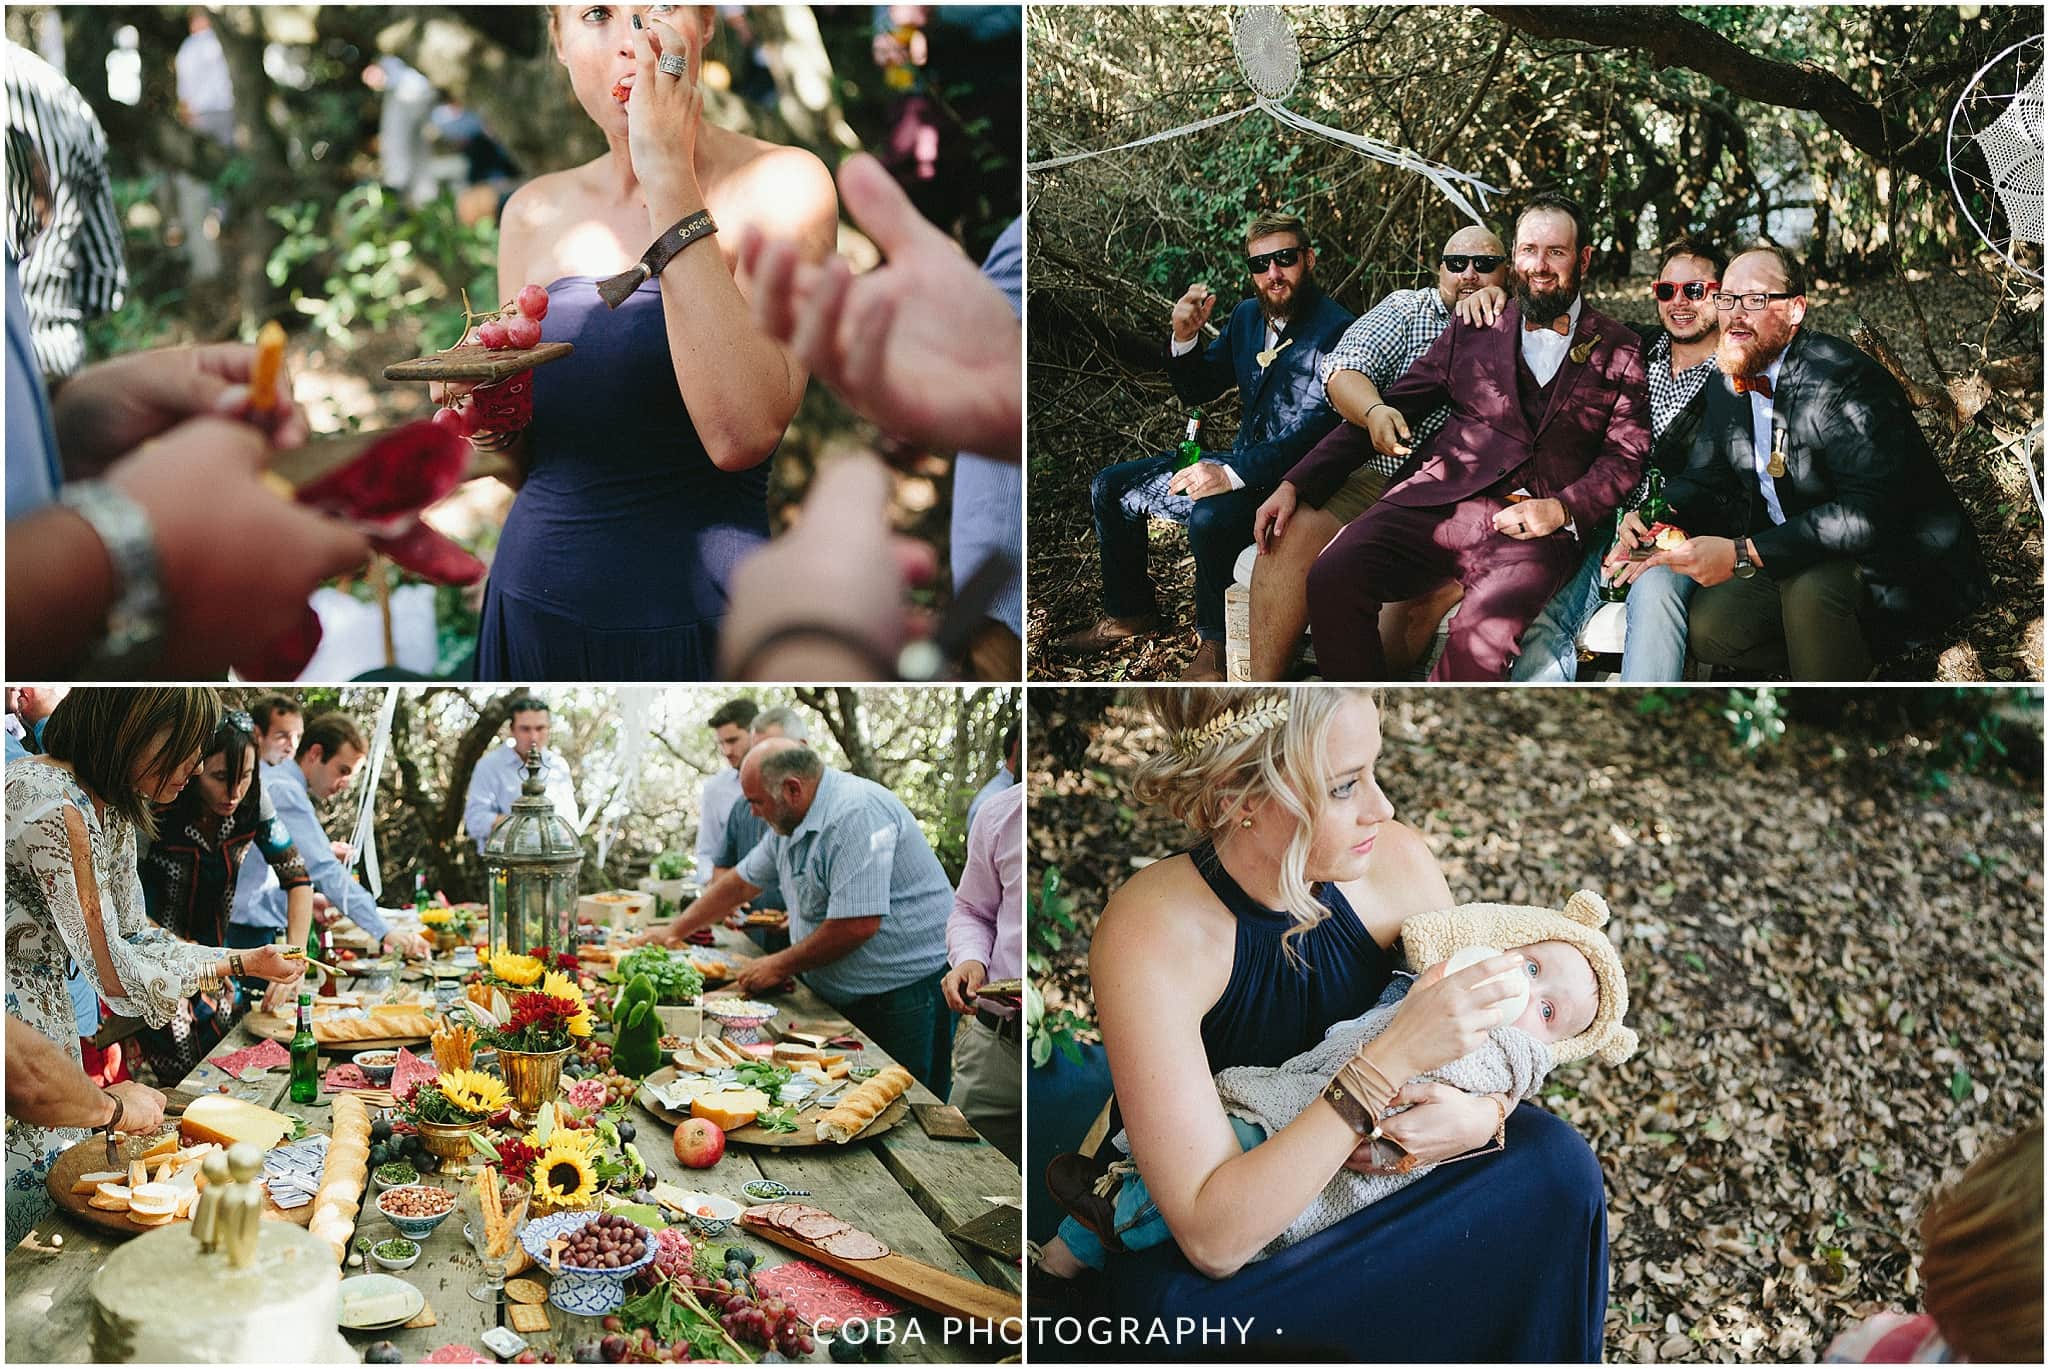 Conrad & Mareli - Boho beach wedding - ceremony (28)